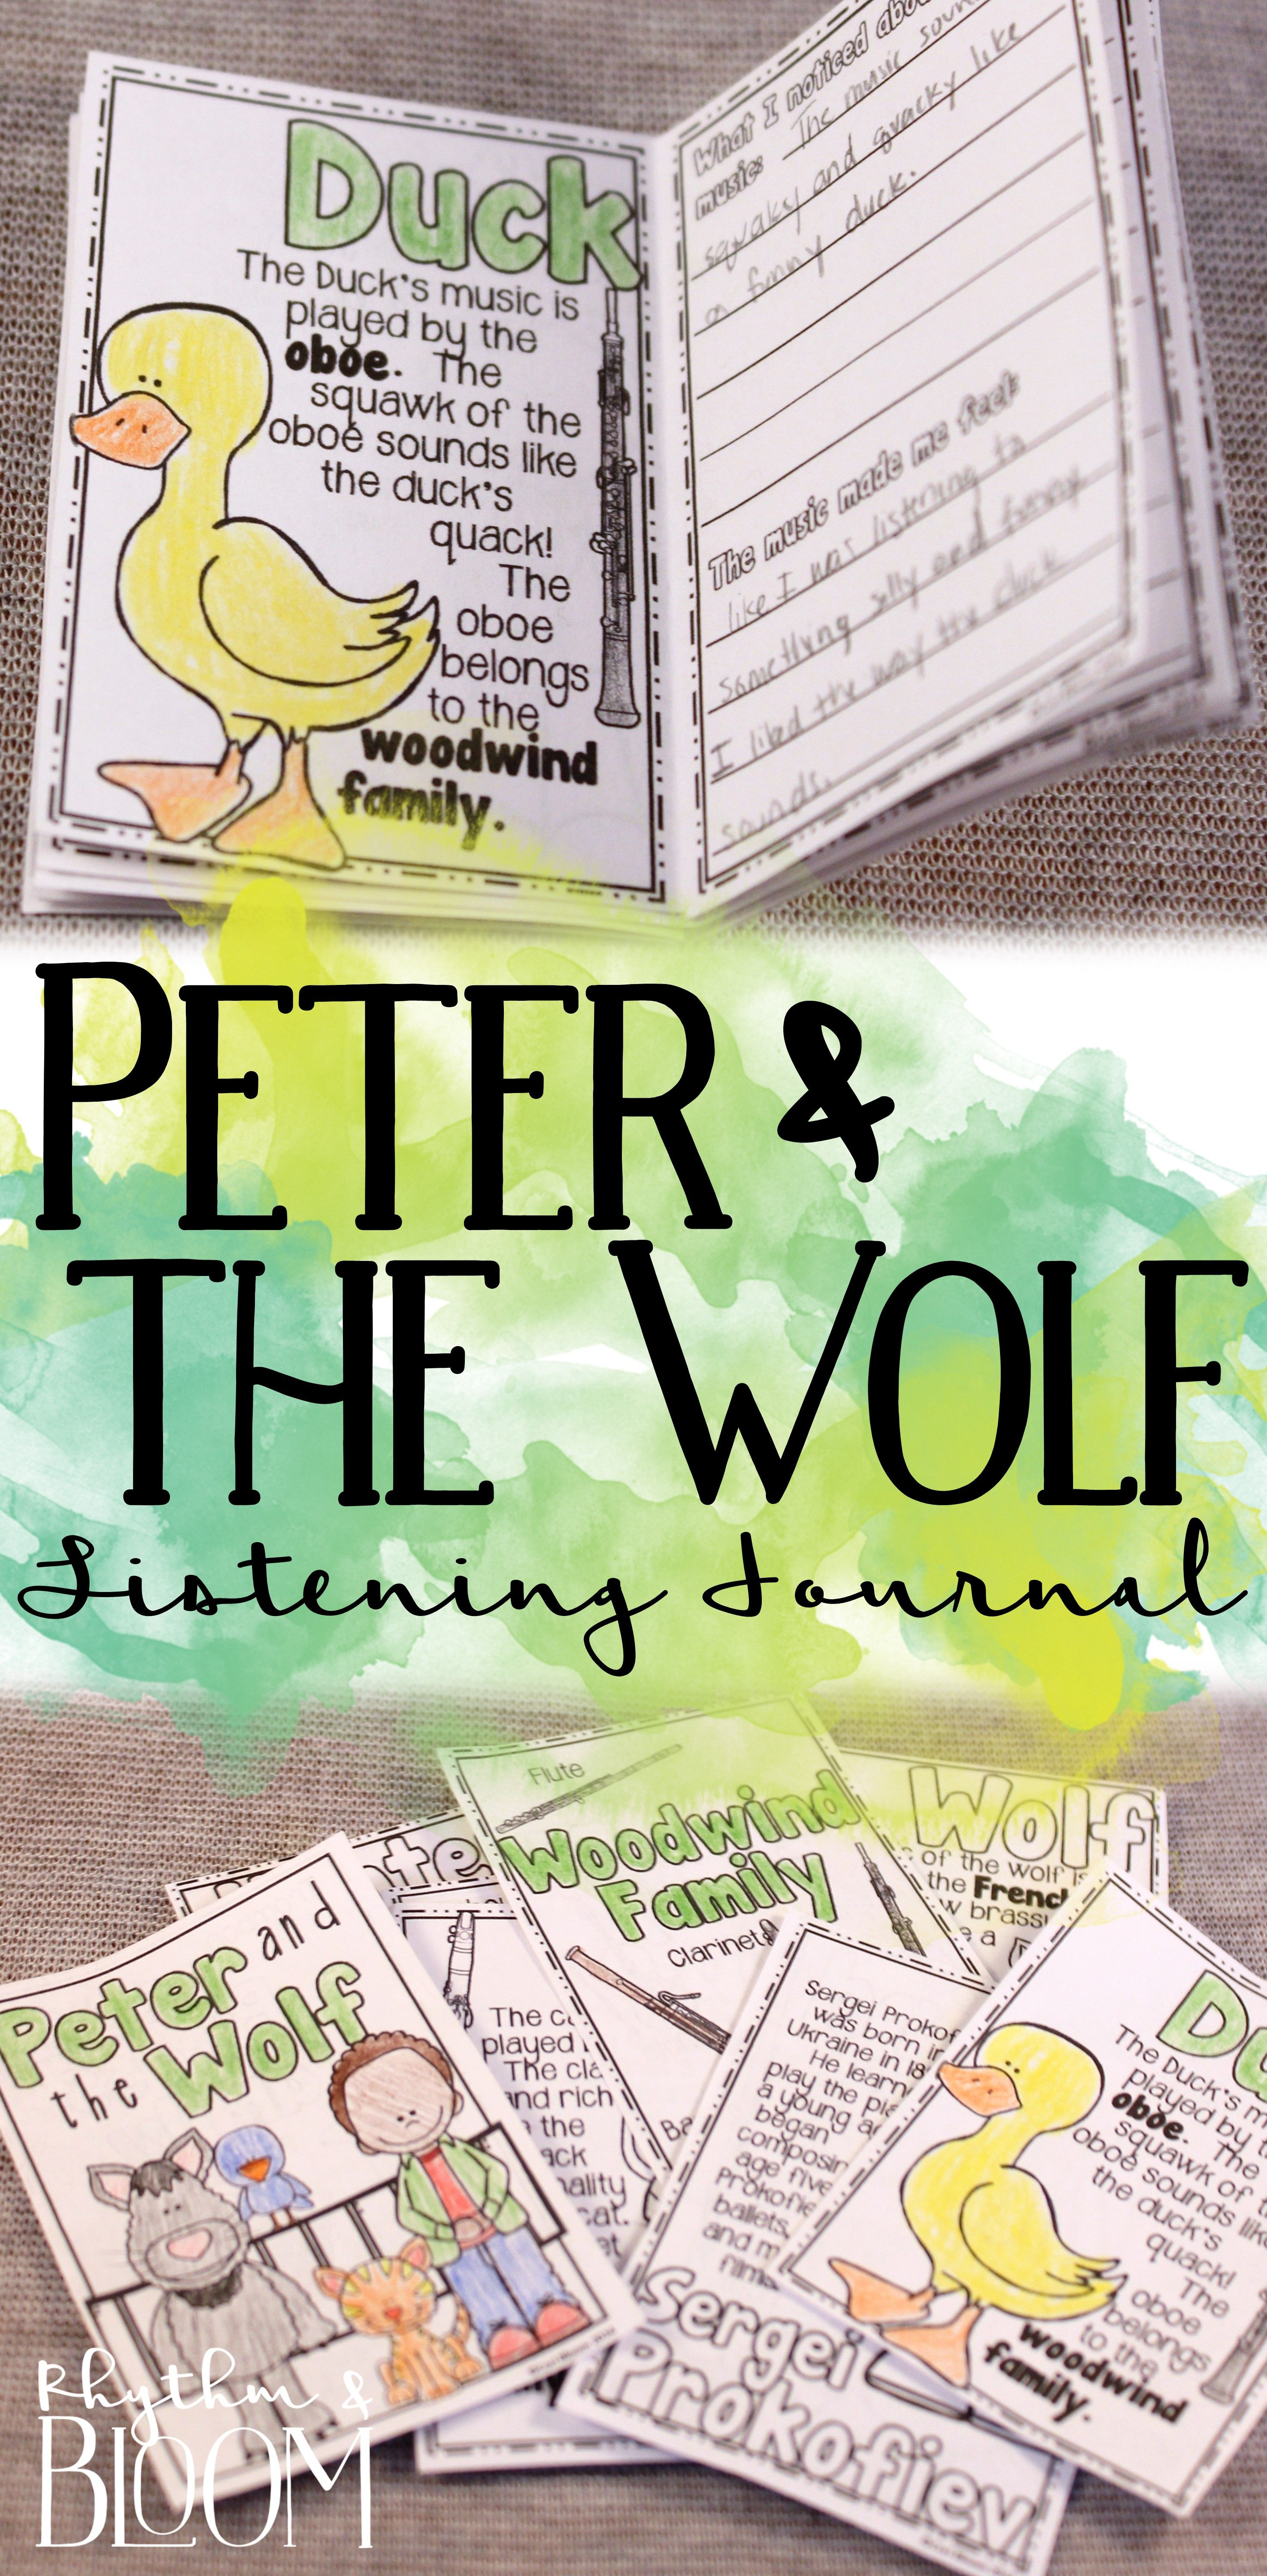 Peter And The Wolf Listening Journal Amp Fact Sheets